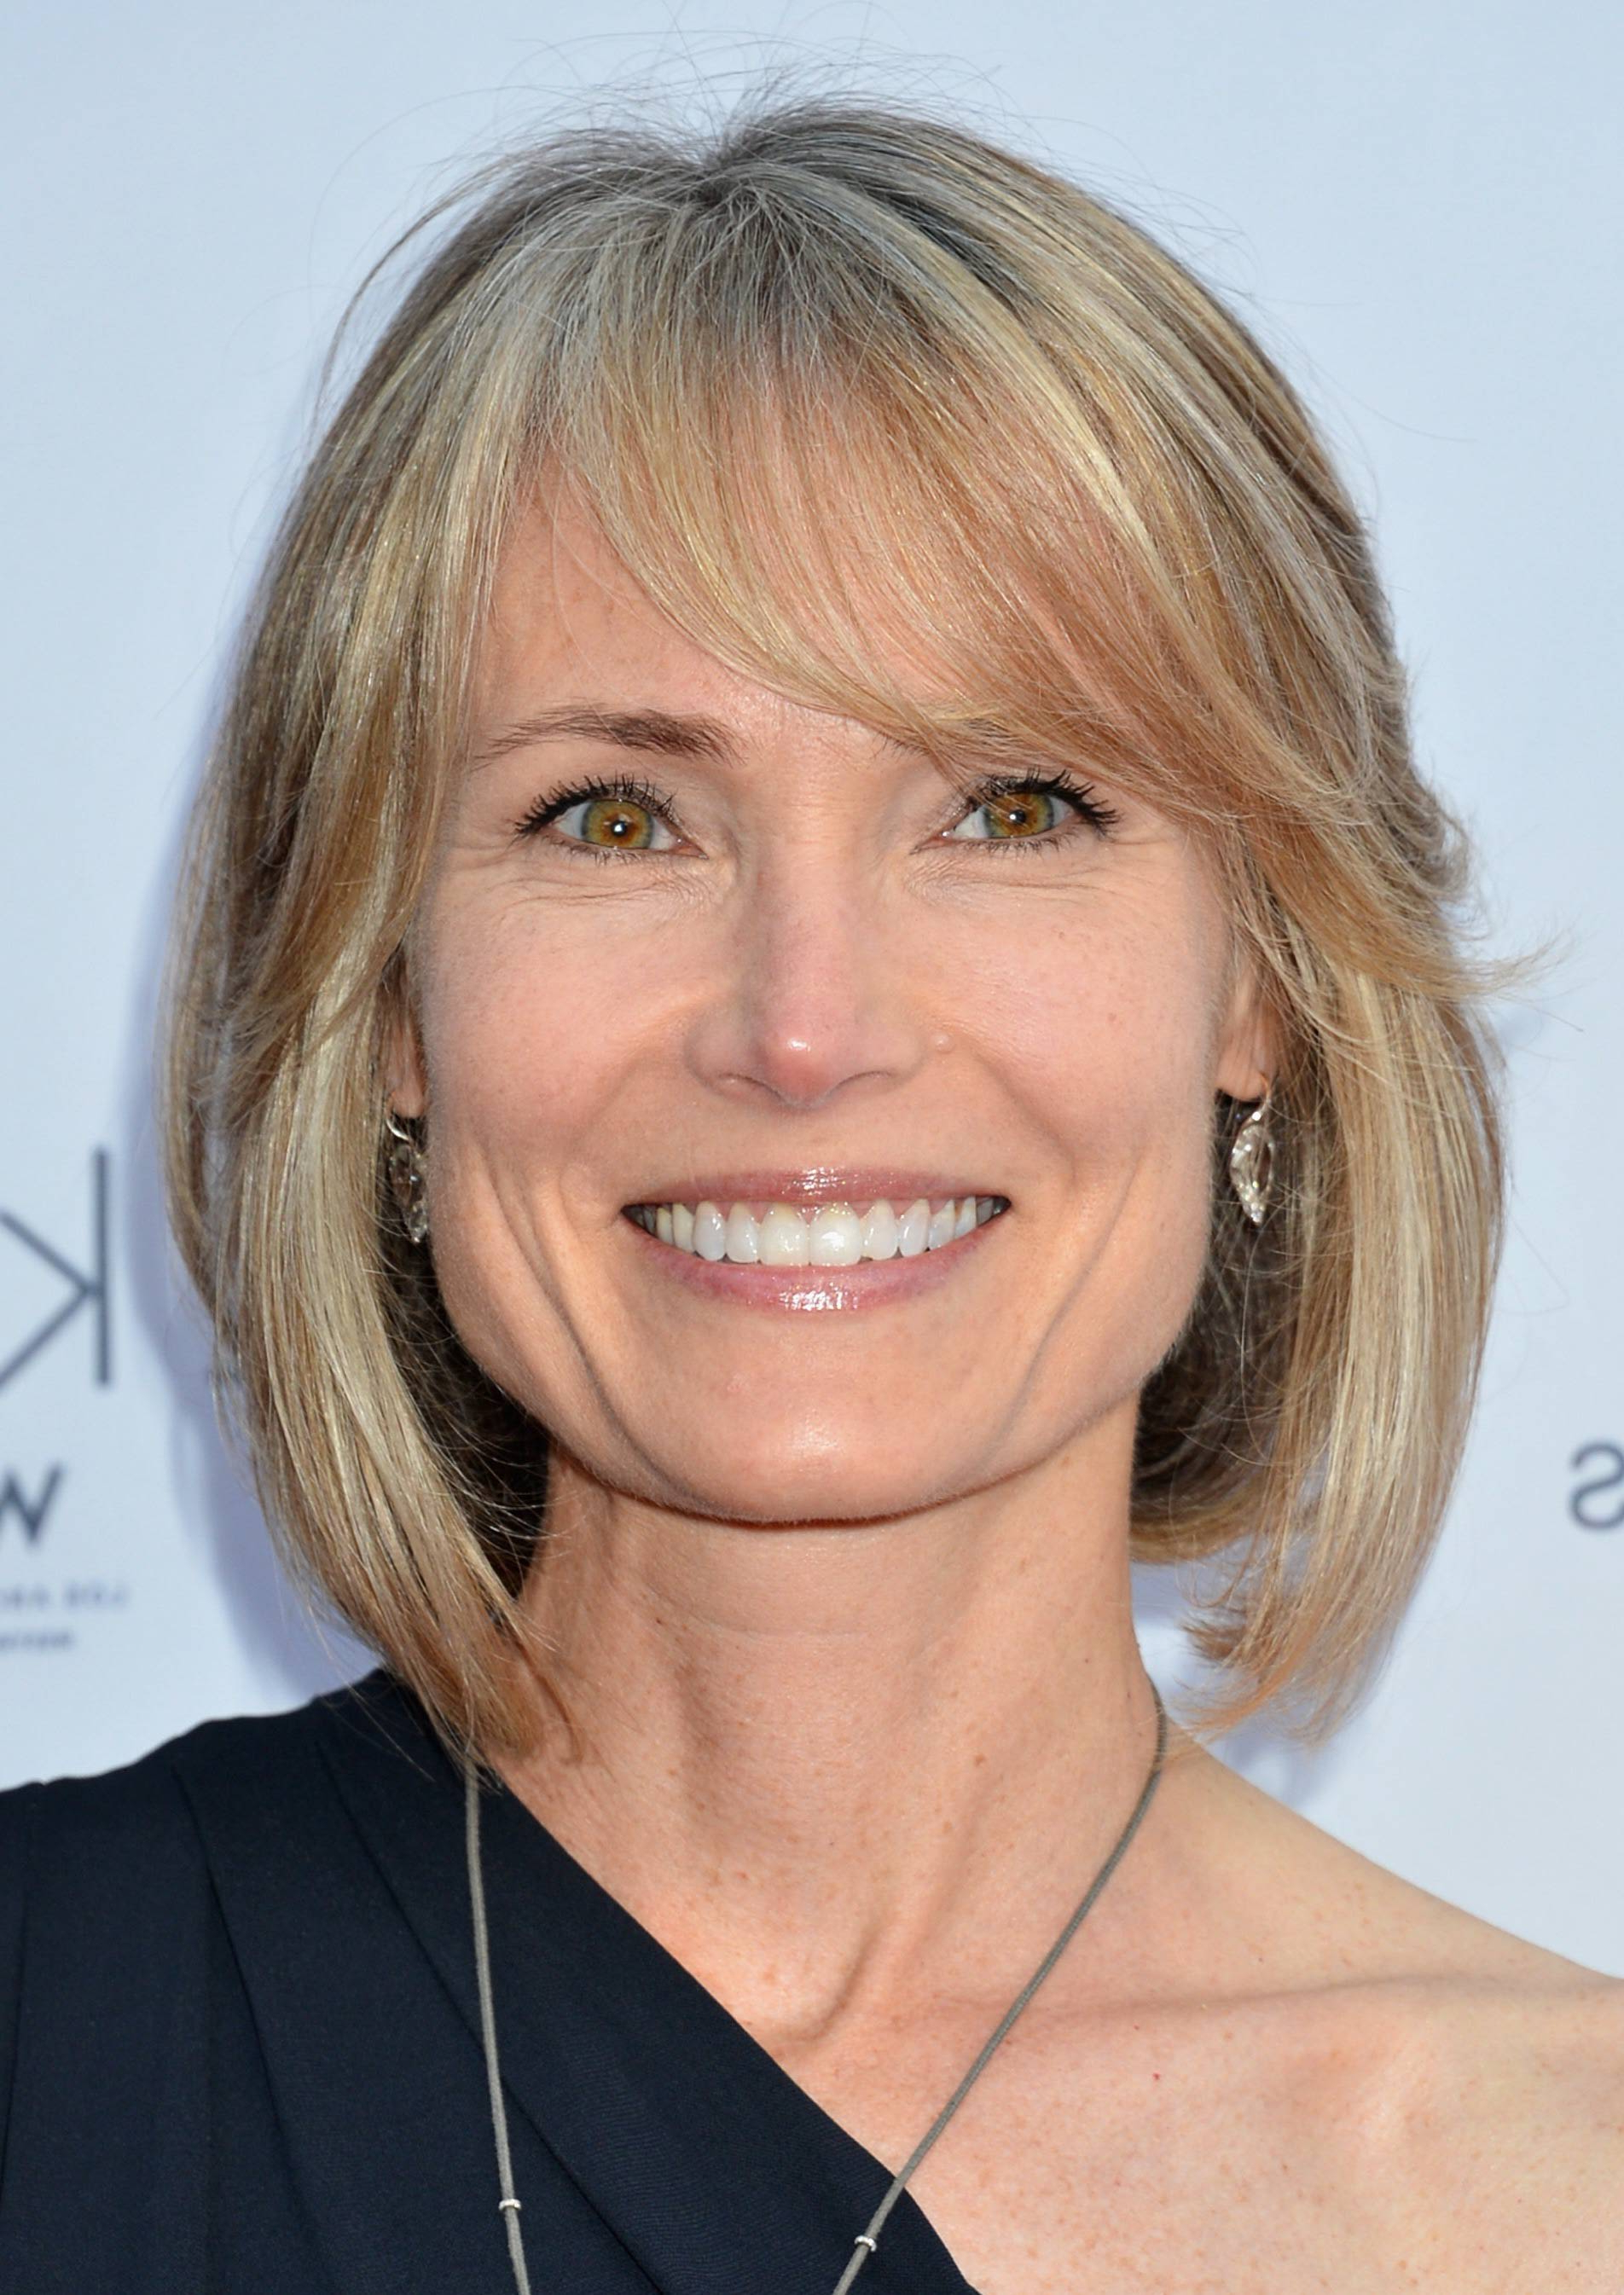 The Best Hair Cuts For Women Over 50 – Women Hairstyles In Short Hair Style For Women Over  (View 12 of 25)